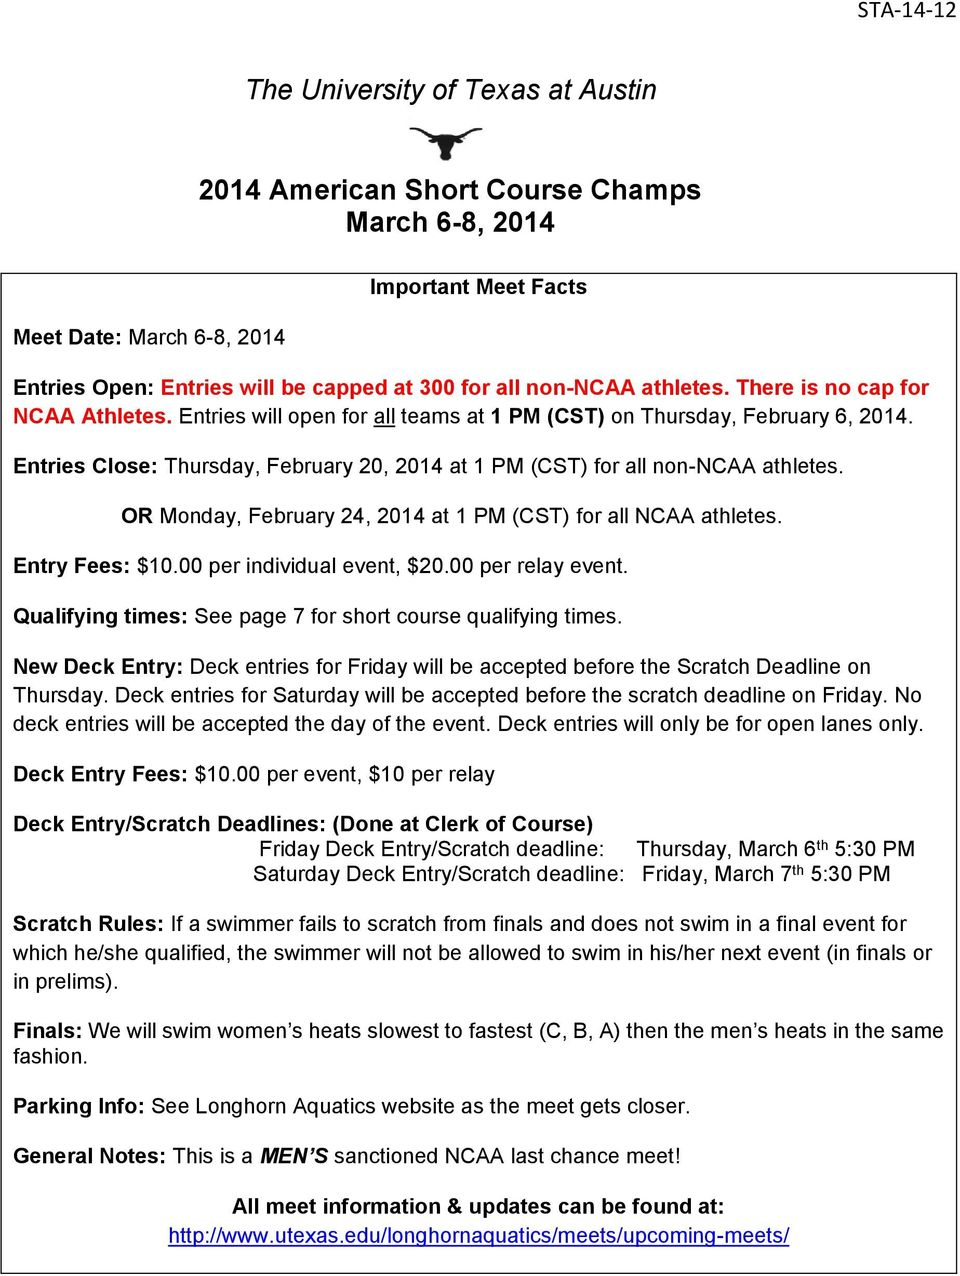 Entries Close: Thursday, February 20, 2014 at 1 PM (CST) for all non-ncaa athletes. OR Monday, February 24, 2014 at 1 PM (CST) for all NCAA athletes. Entry Fees: $10.00 per individual event, $20.